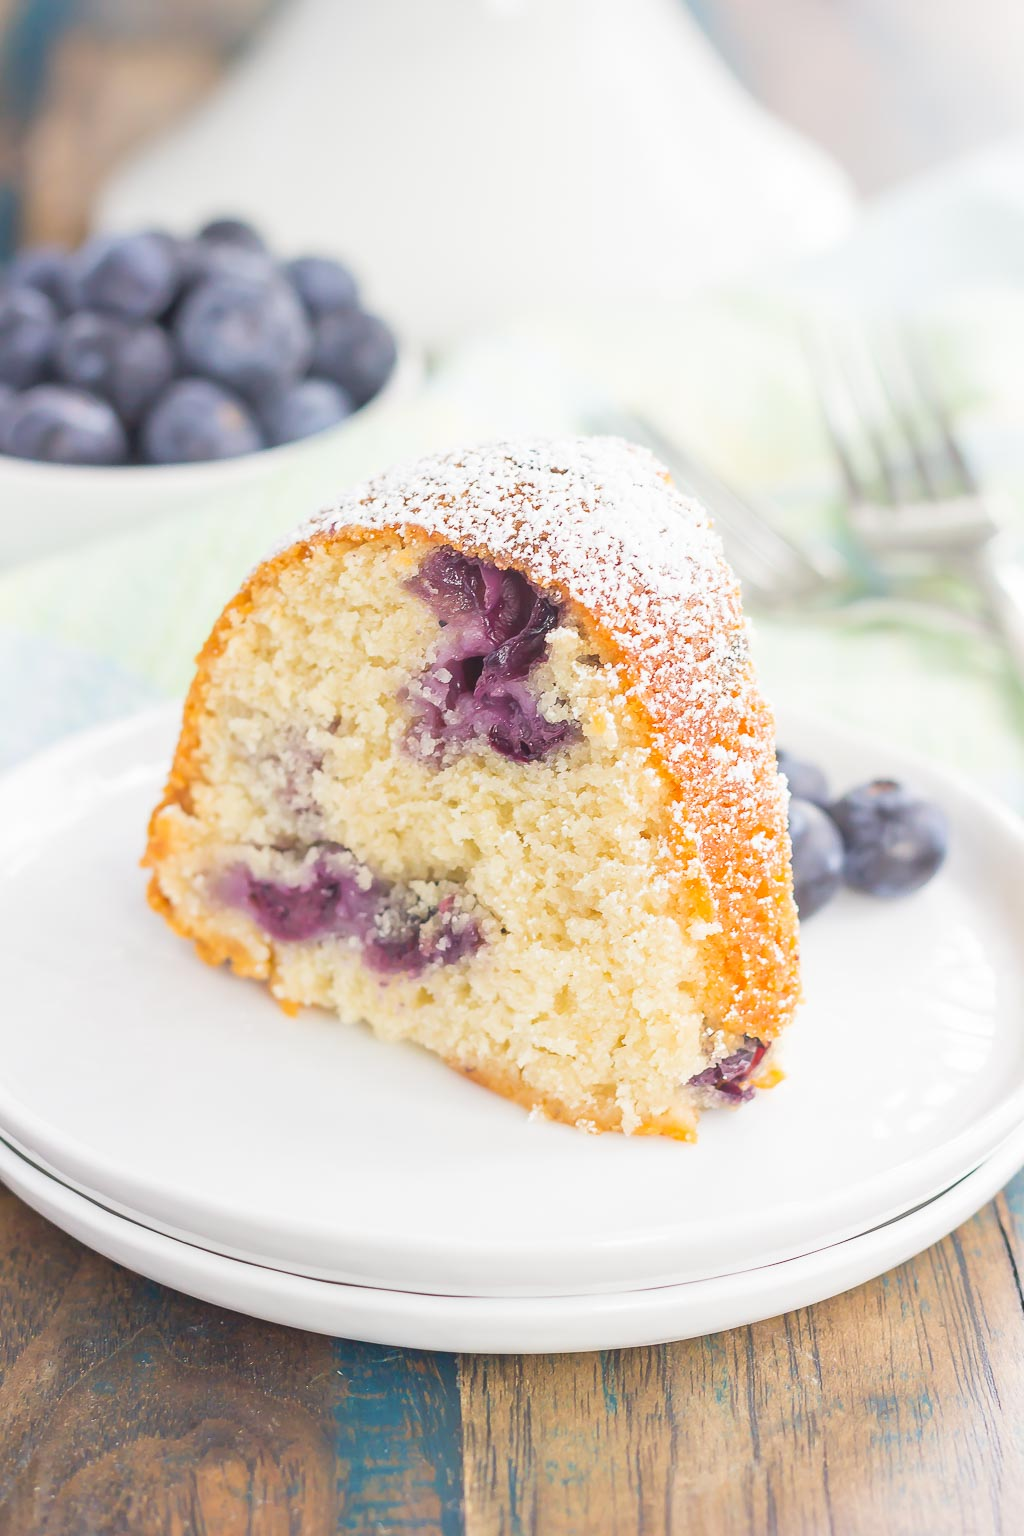 Fresh blueberries and creamy blueberry yogurt give this Blueberry Yogurt Cake a deliciously moist texture, full of blueberry flavor!